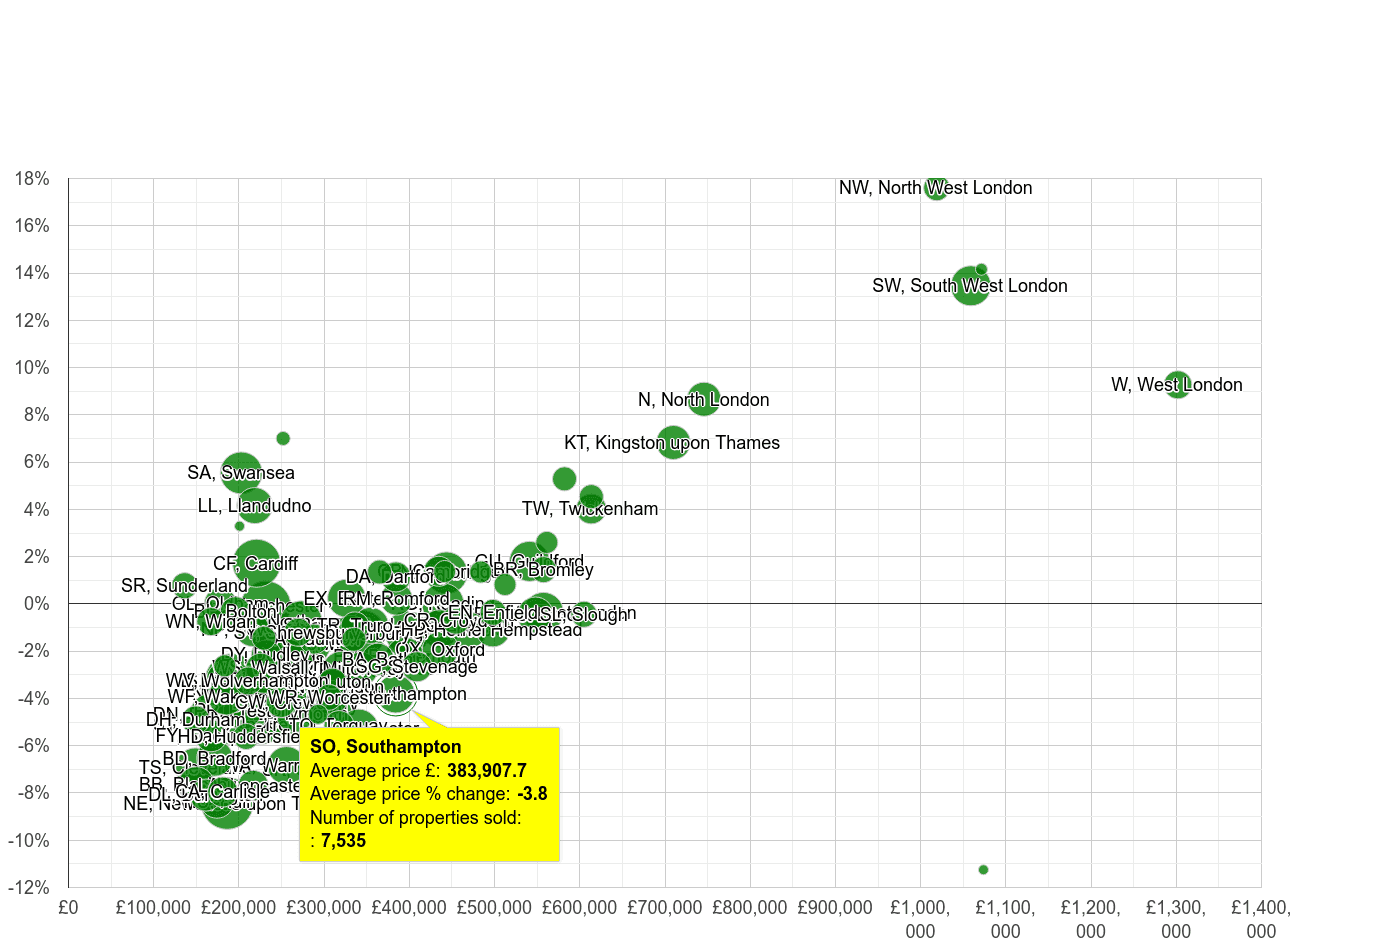 Southampton house prices compared to other areas